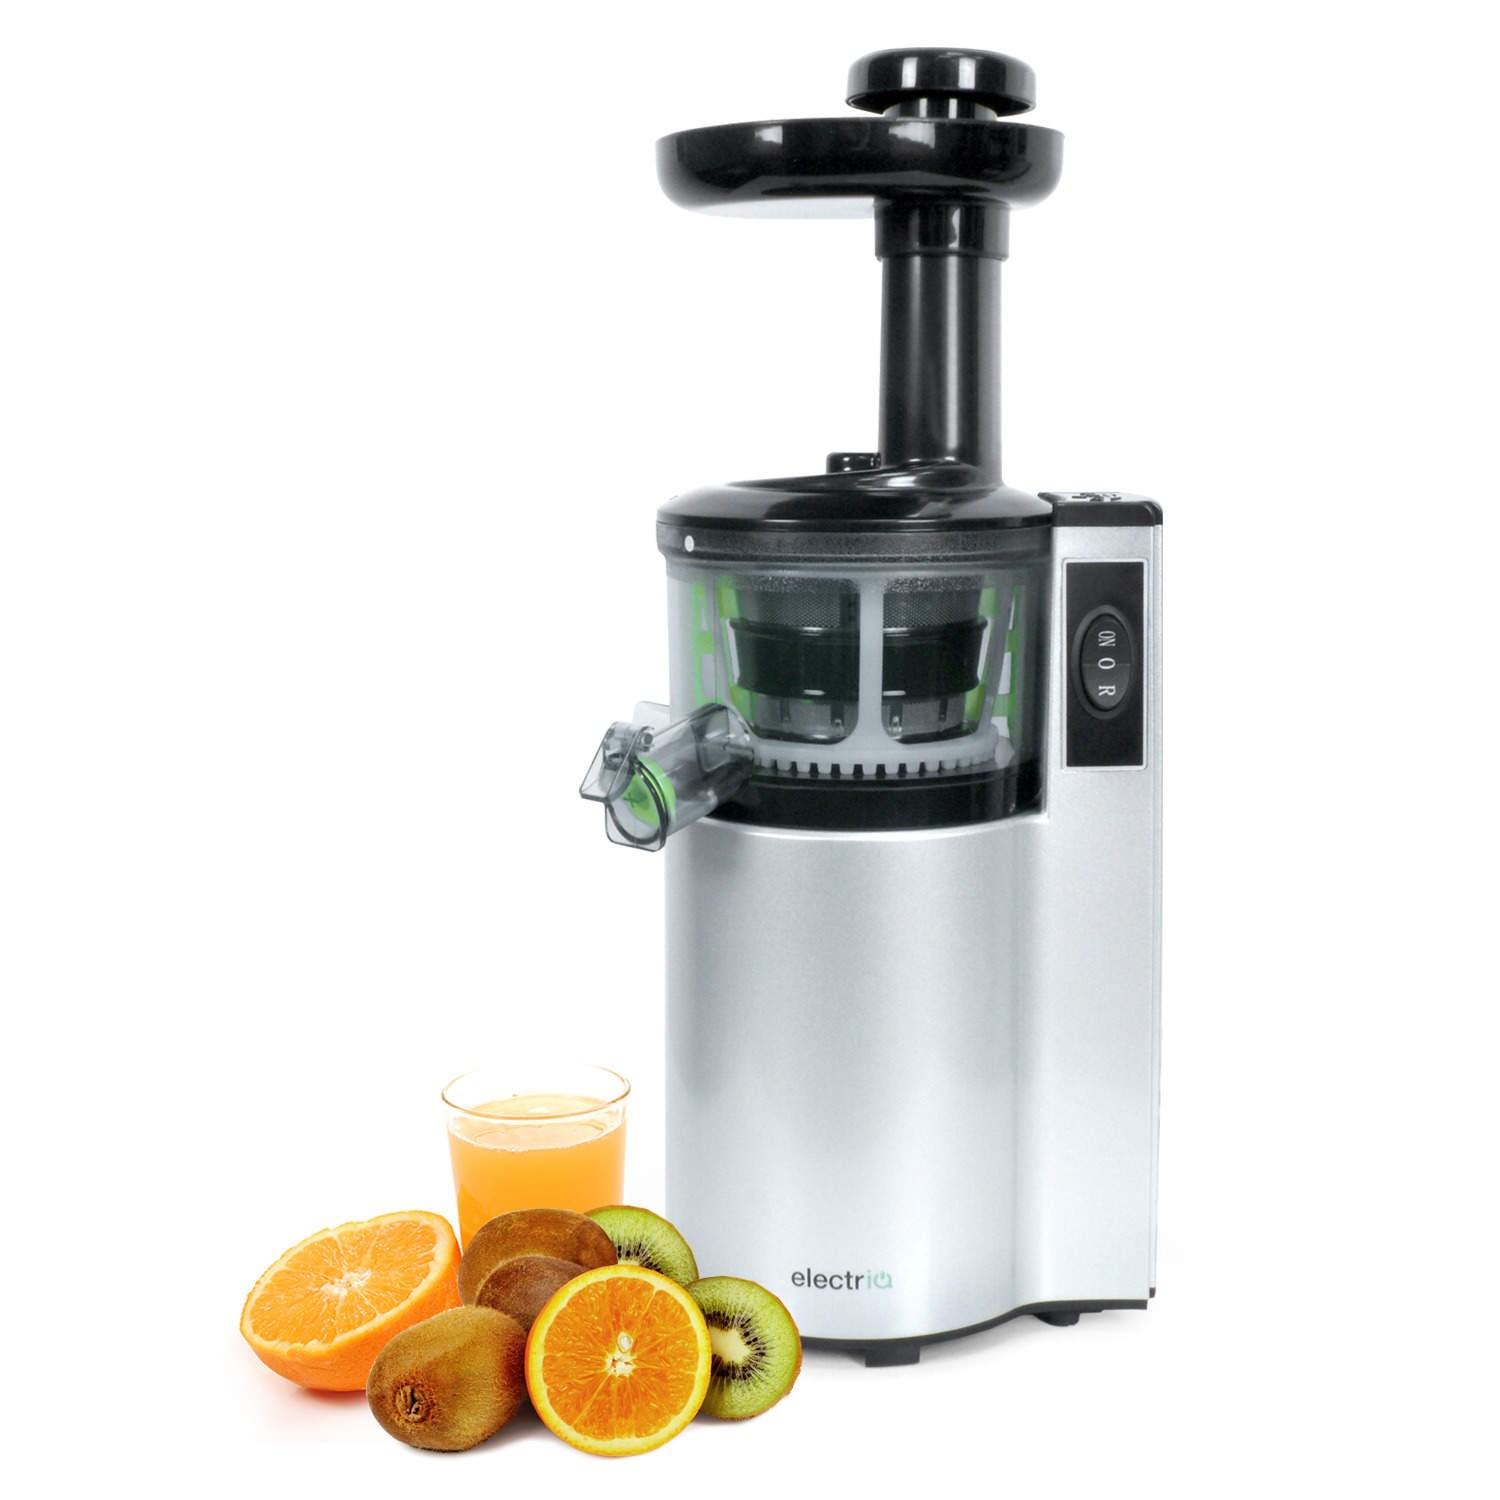 Juice Recipes For Slow Juicer : ElectriQ vertical Slow Masticating Juicer Fruit vegetable ...